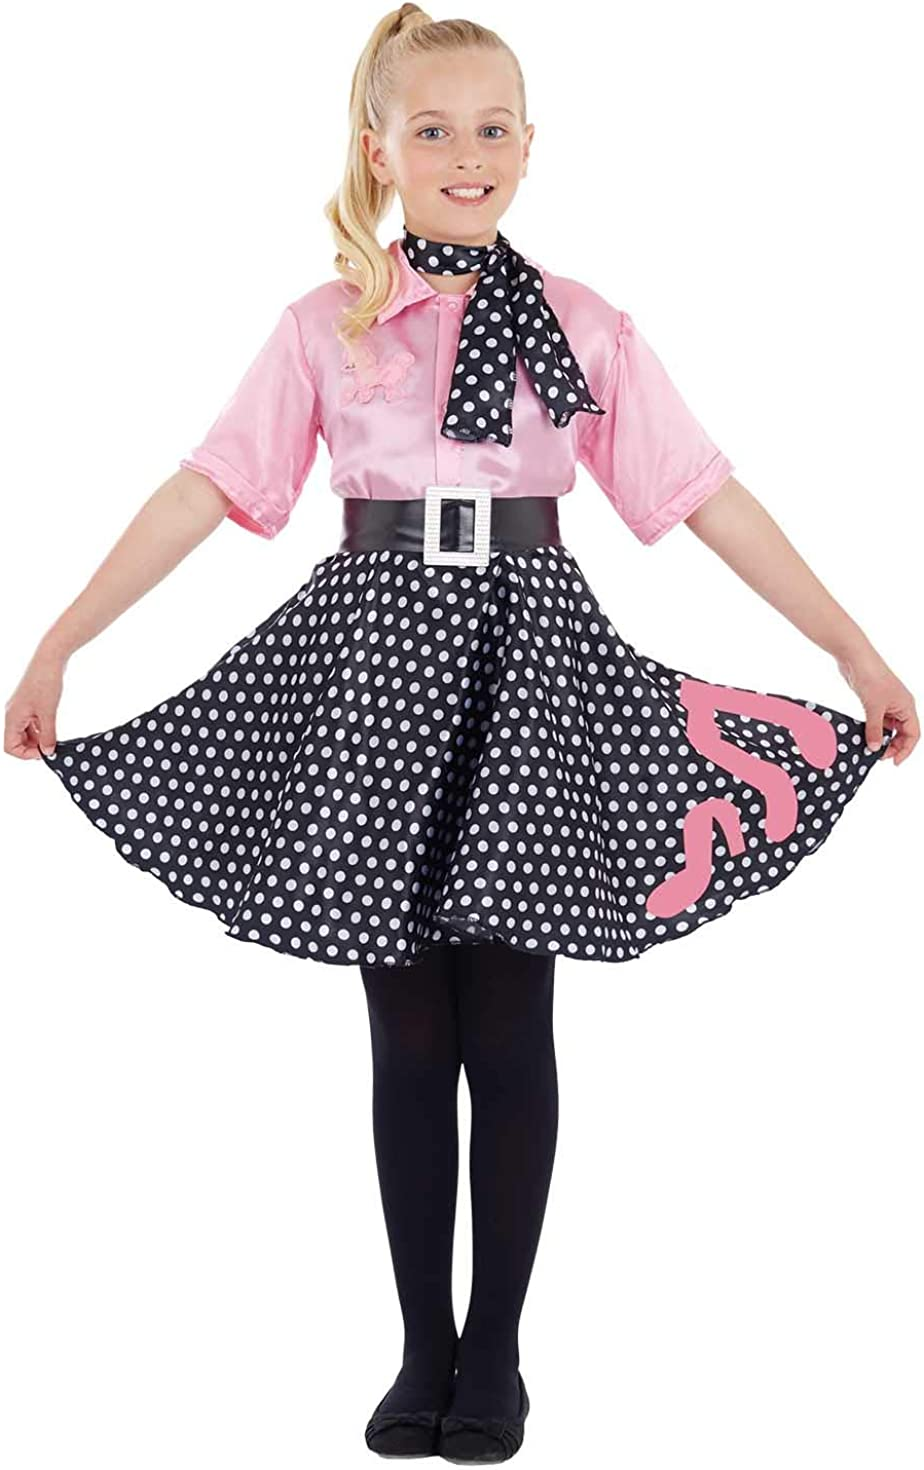 Girls 50s Poodle Dress Costume Kids Rock N Roll Polka Dot Decades Outfit